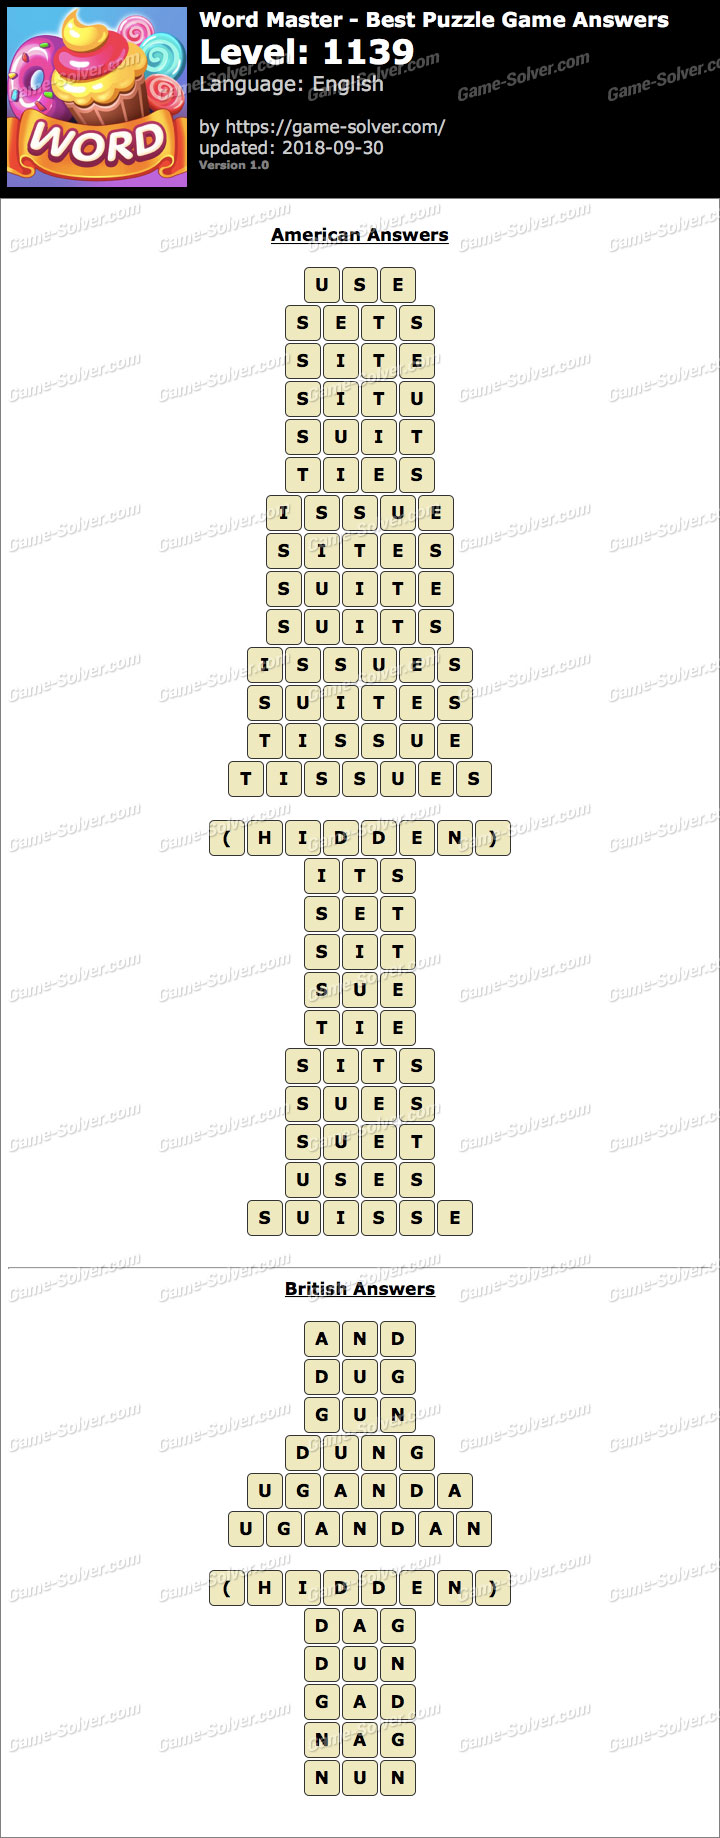 Word Master-Best Puzzle Game Level 1139 Answers